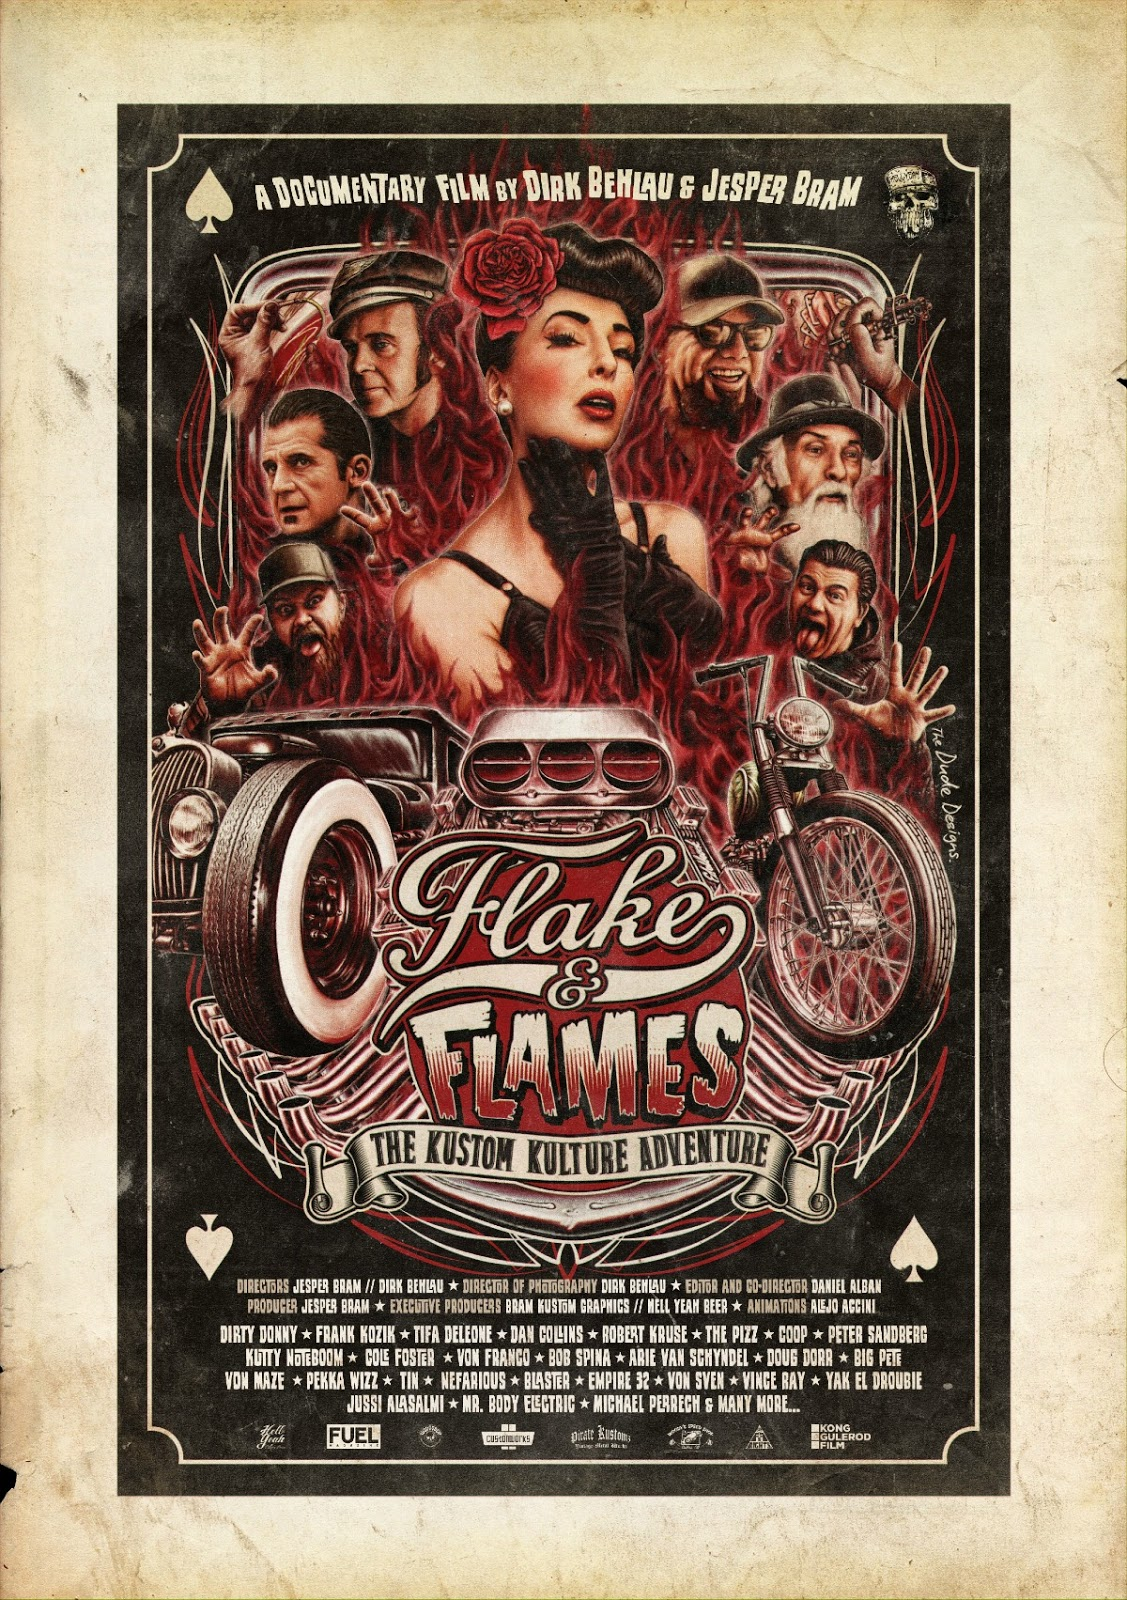 flake and flames - the kustom kulture adventure